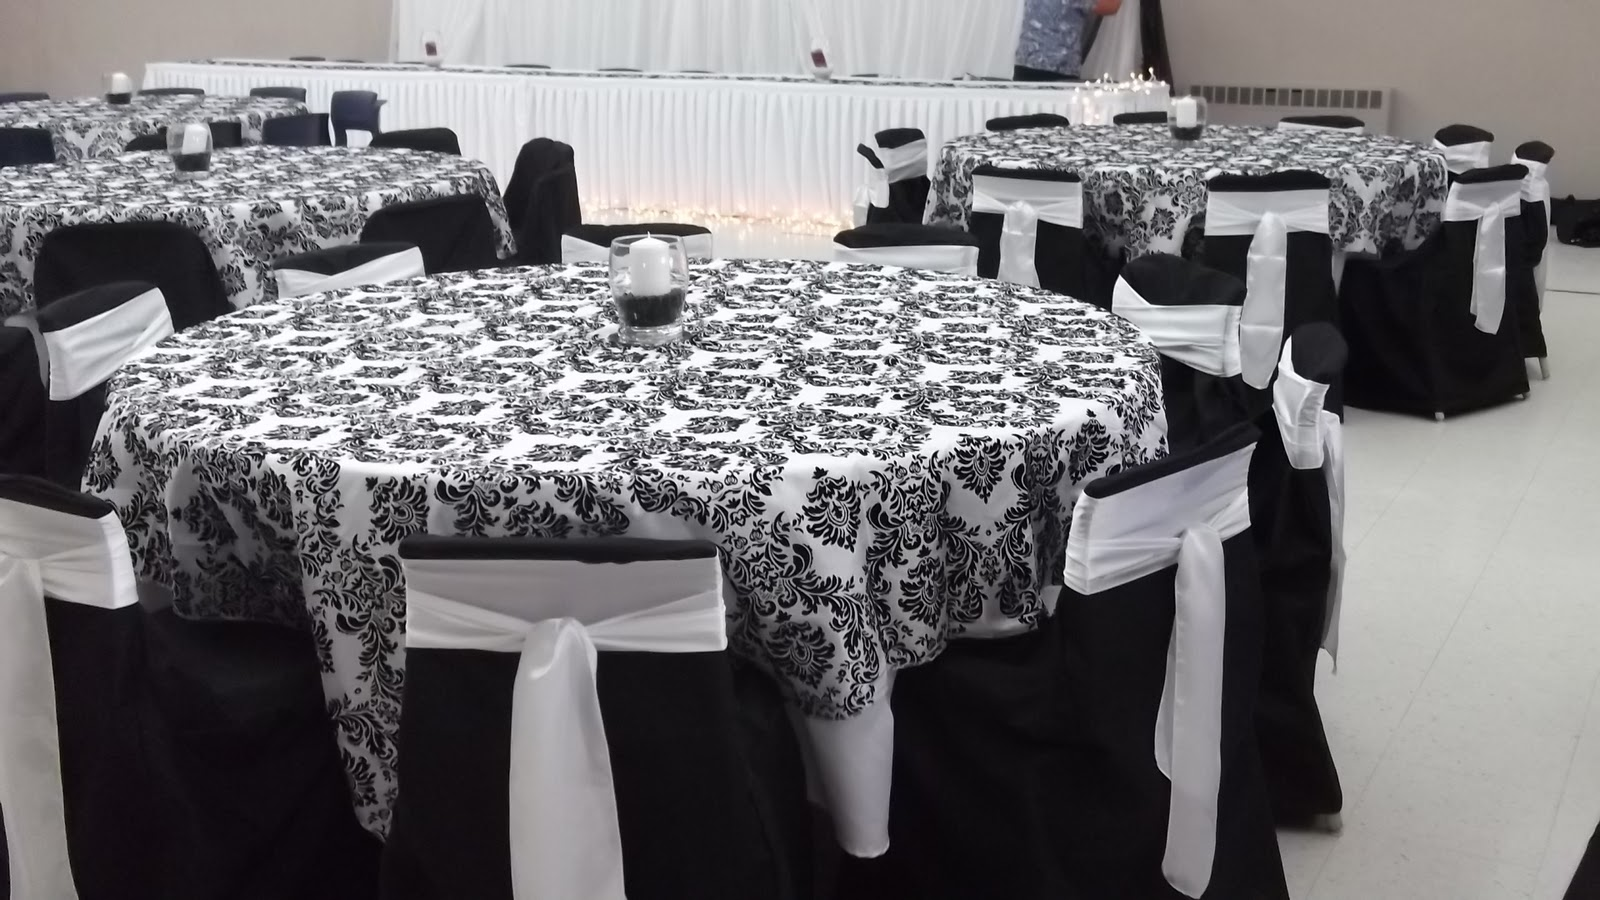 simply elegant chair covers and linens walmart armless diy wedding decor: decor